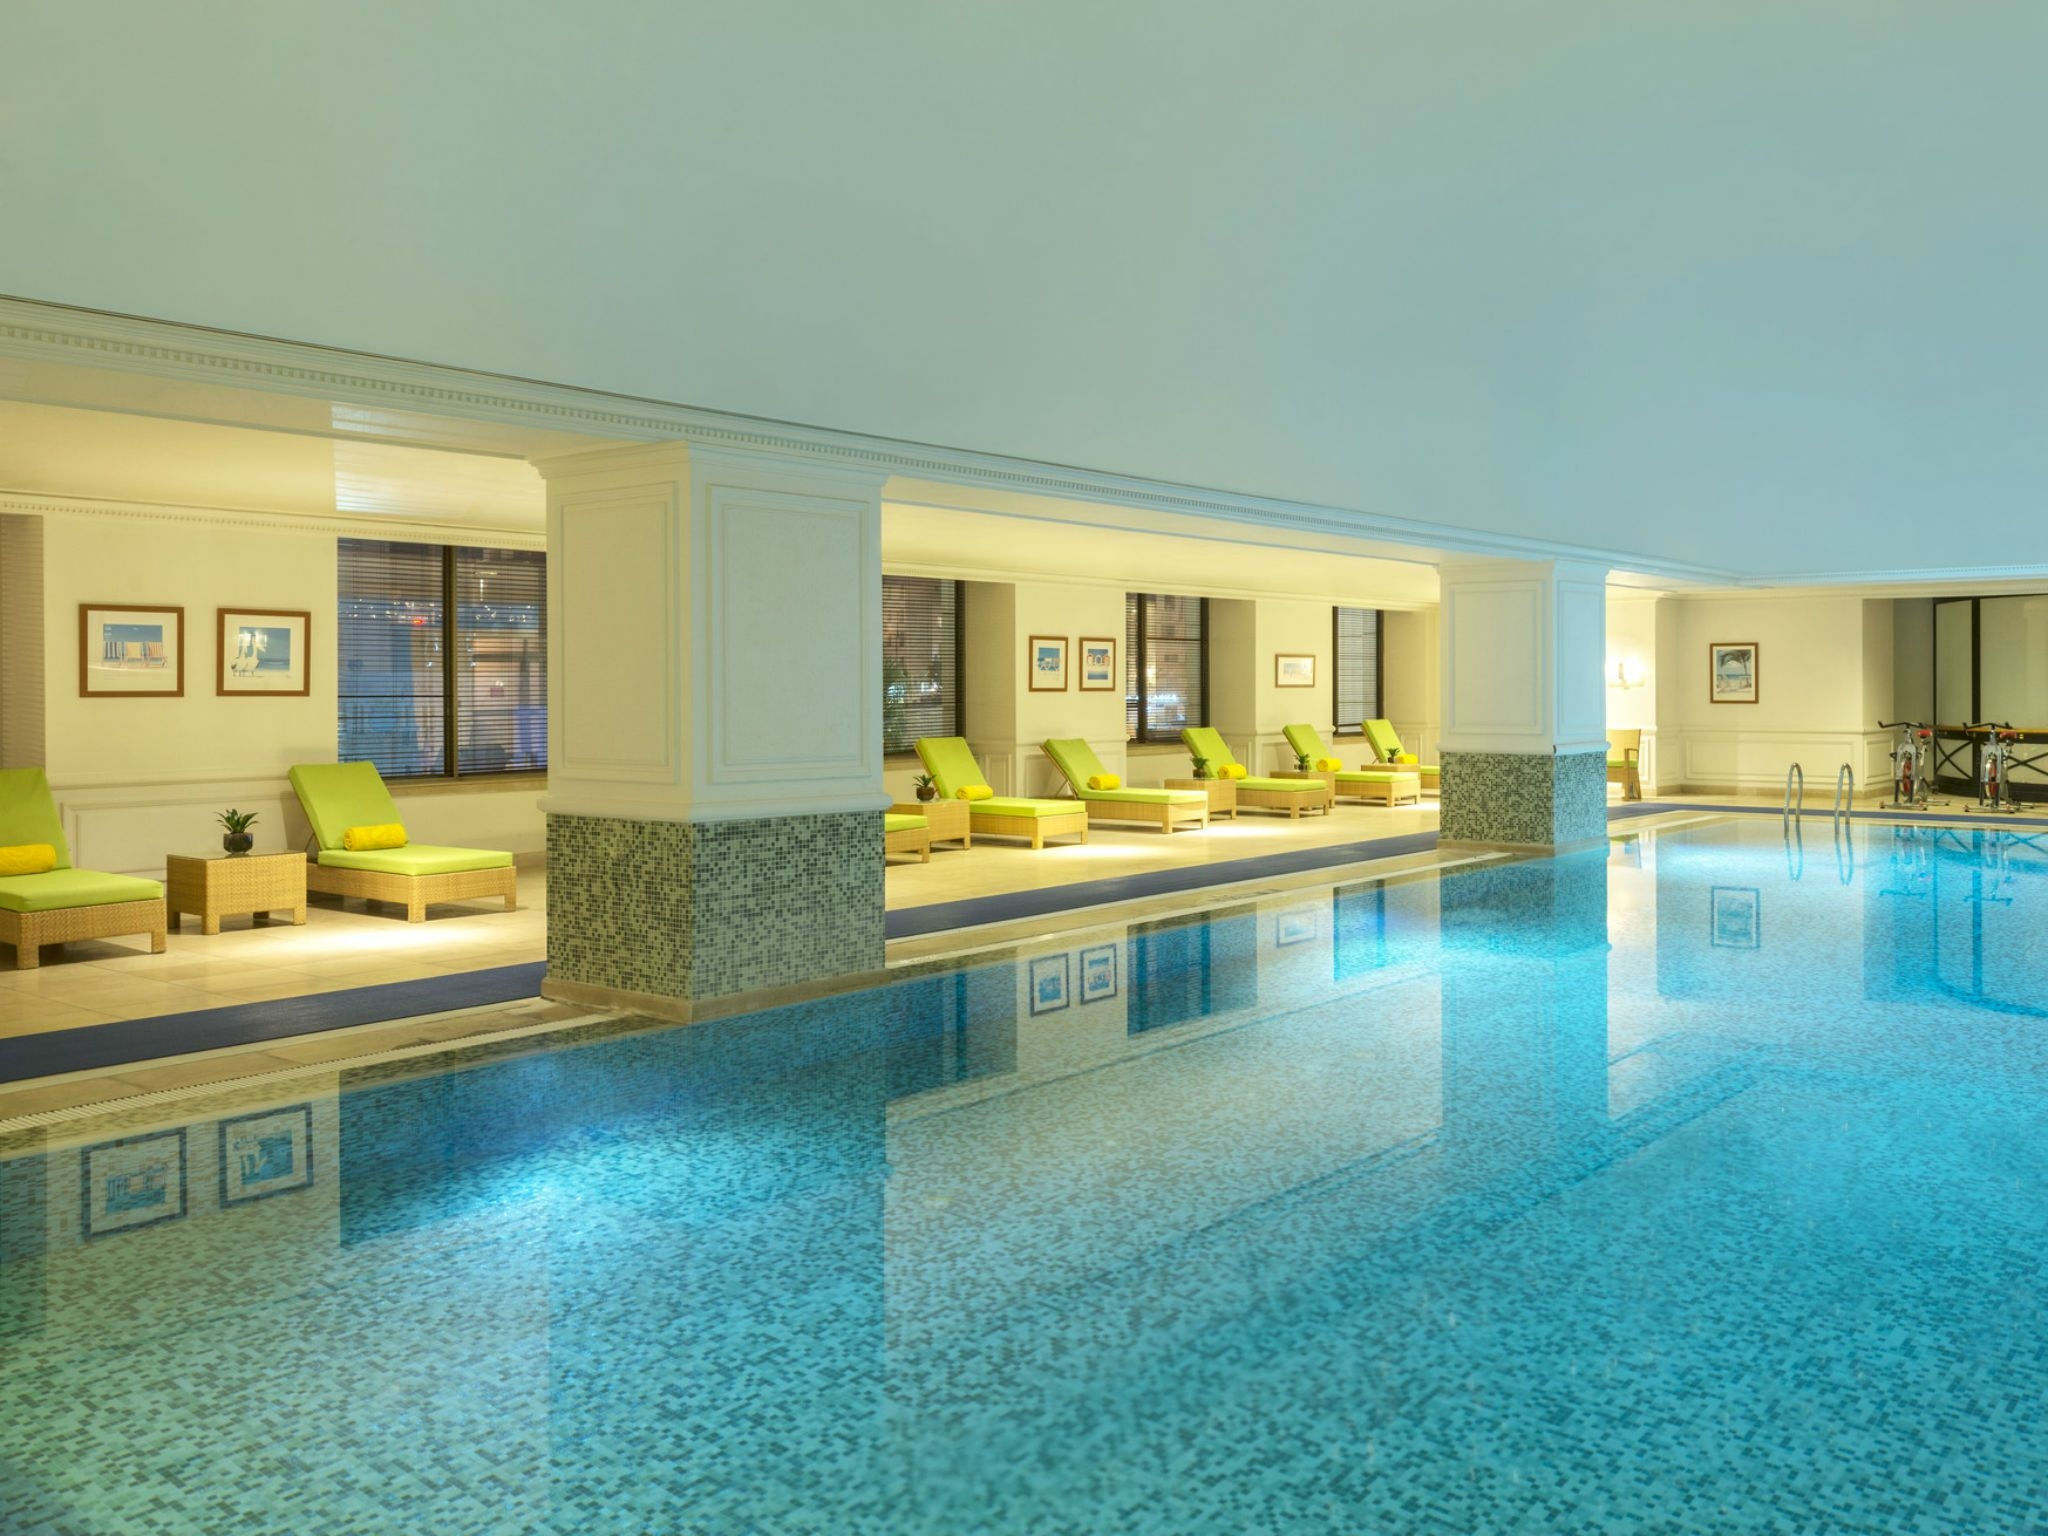 Indoor Swimming Pool at Sheraton Amman Al Nabil Hotel